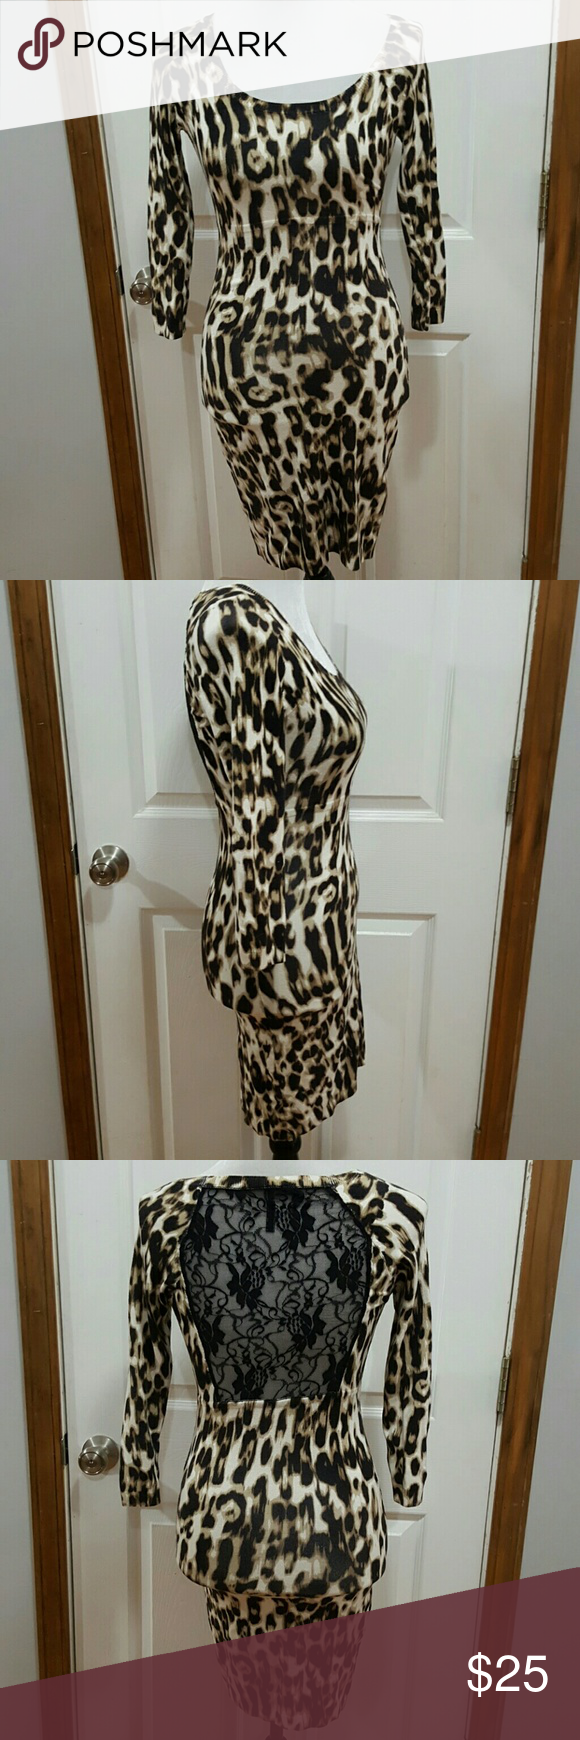 0c2fc3e659 Guess Los Angeles Animal Print Knit Bodycon Dress Guess Los Angeles Animal  Print Knit Bodycon Dress